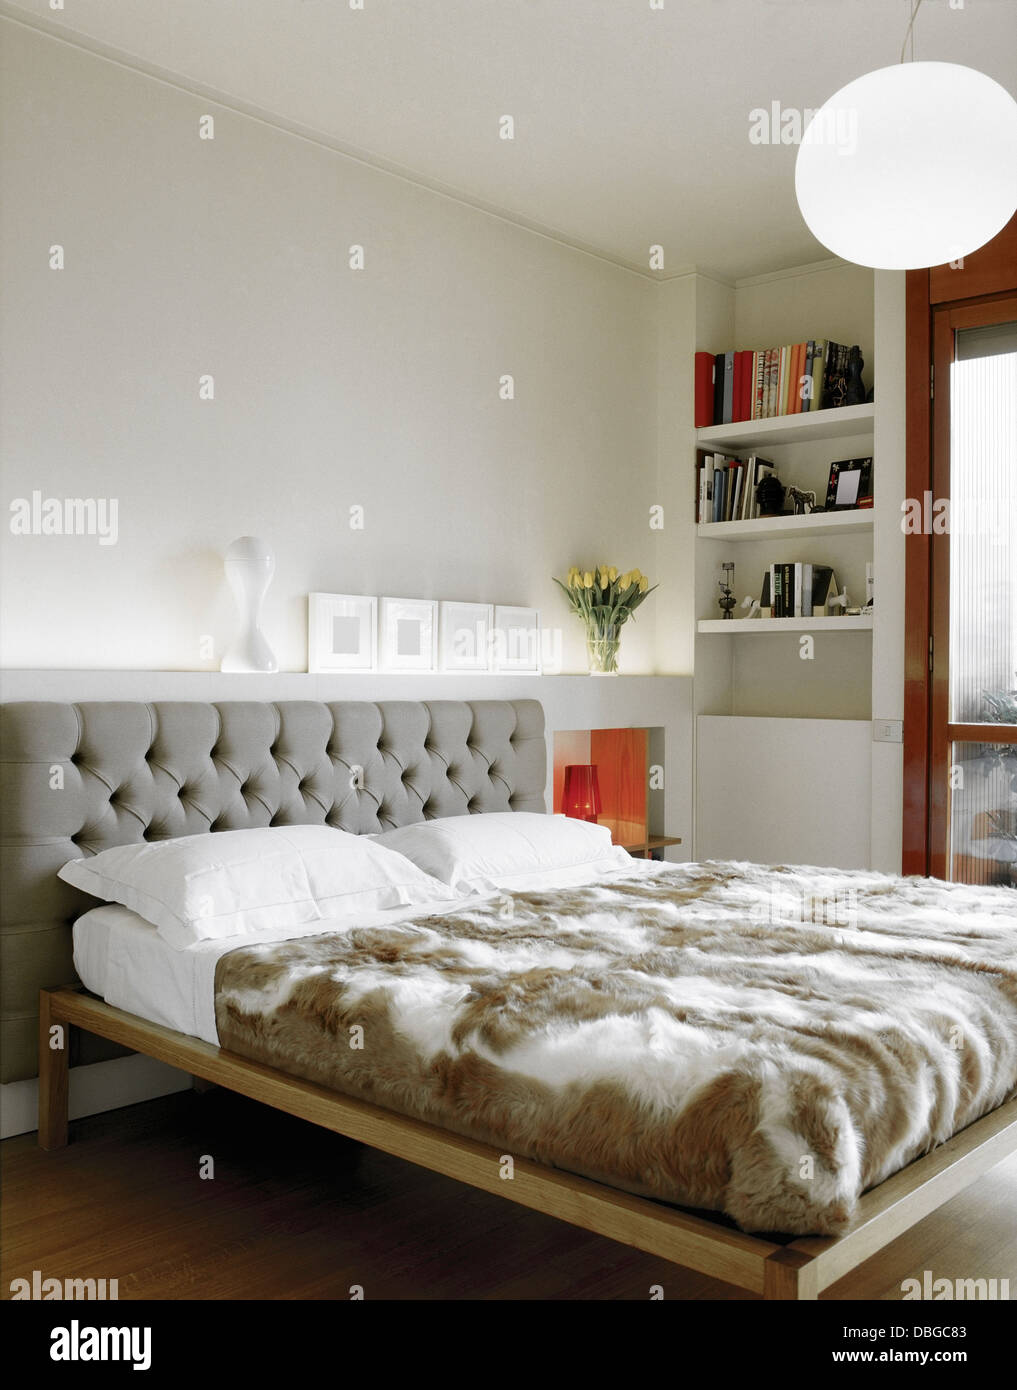 Modern Bed For A Bedroom With Bookcase And Wood Floor Stock